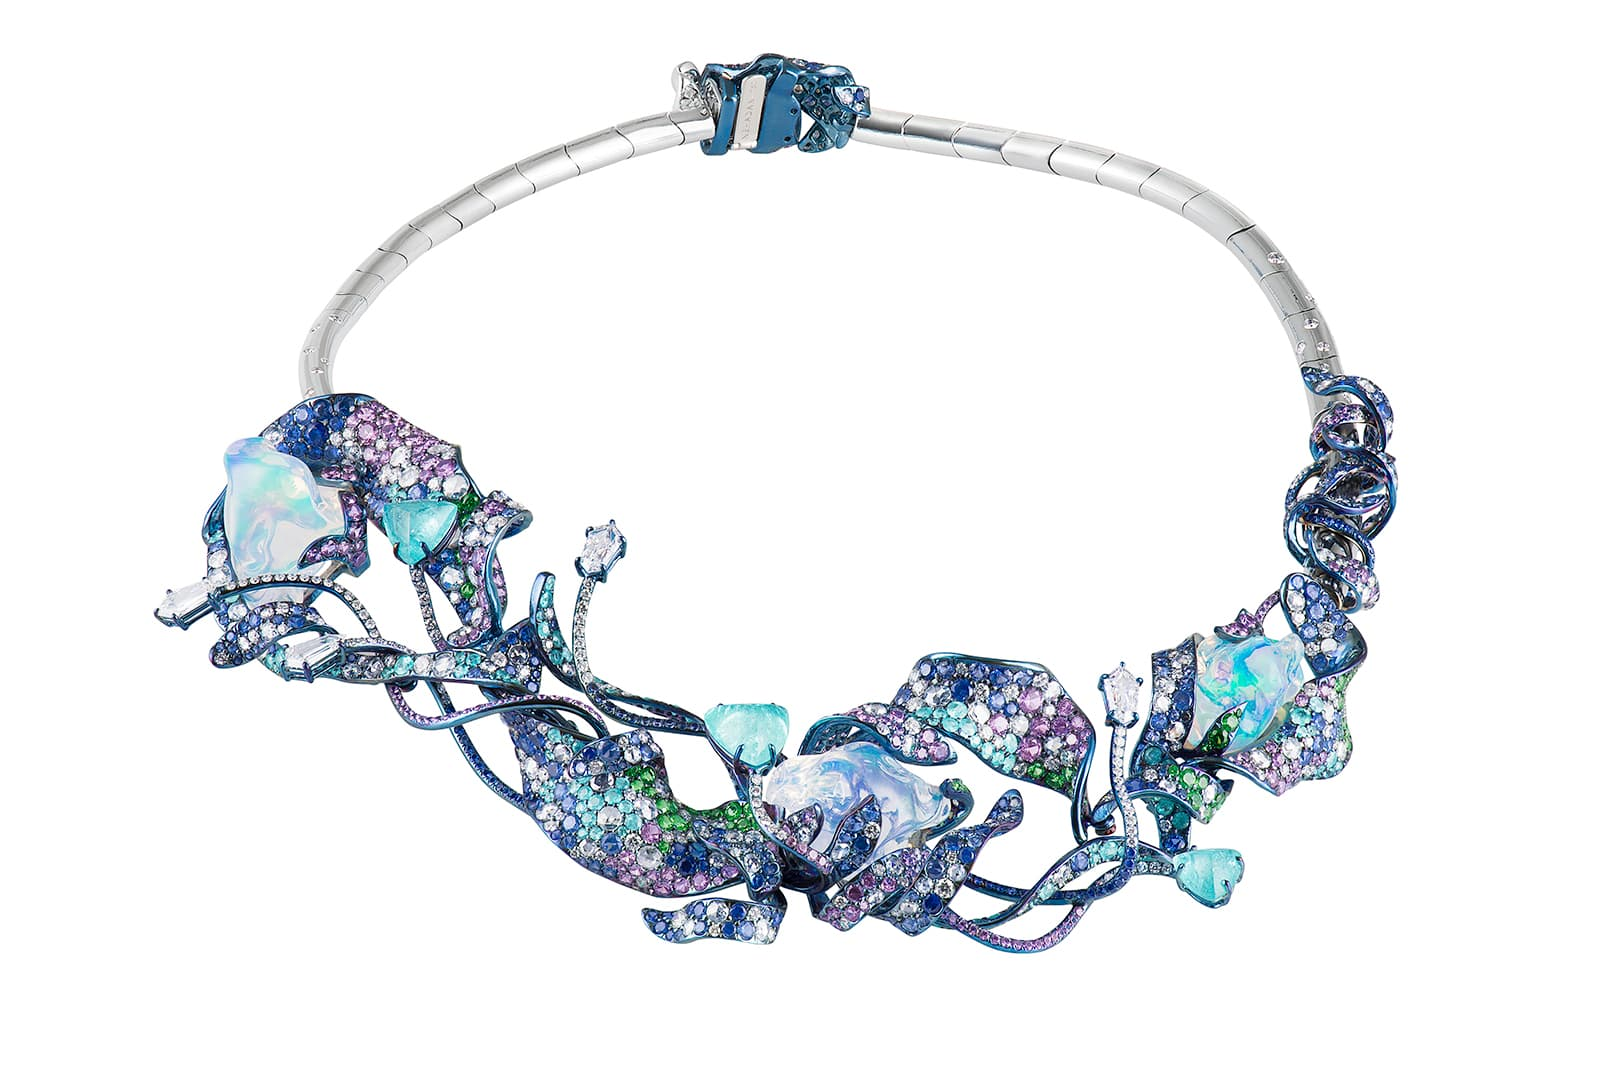 Neha Dani 'Shristi' collection 'Vaneesha' necklace with water opal, diamonds, Paraiba tourmalines, blue and purple sapphires and tsavorite garnets in titanium